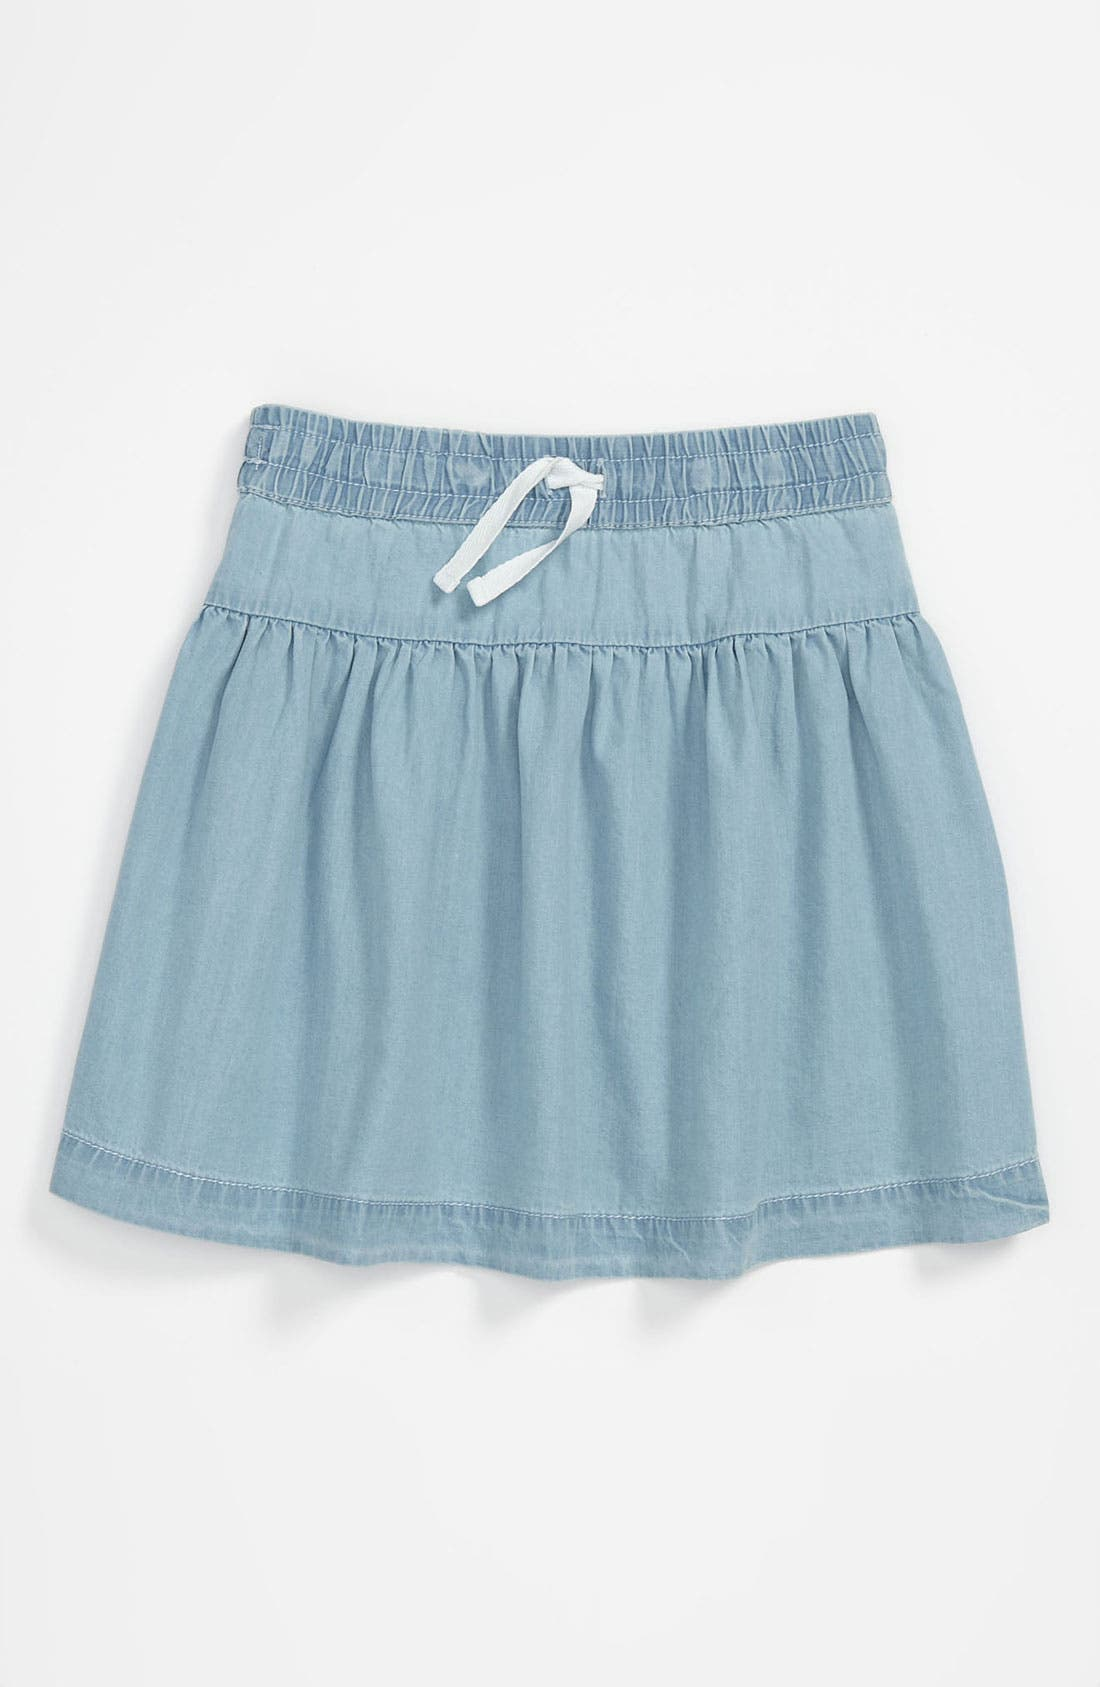 Main Image - Tucker + Tate 'Pippa' Chambray Skirt (Big Girls)